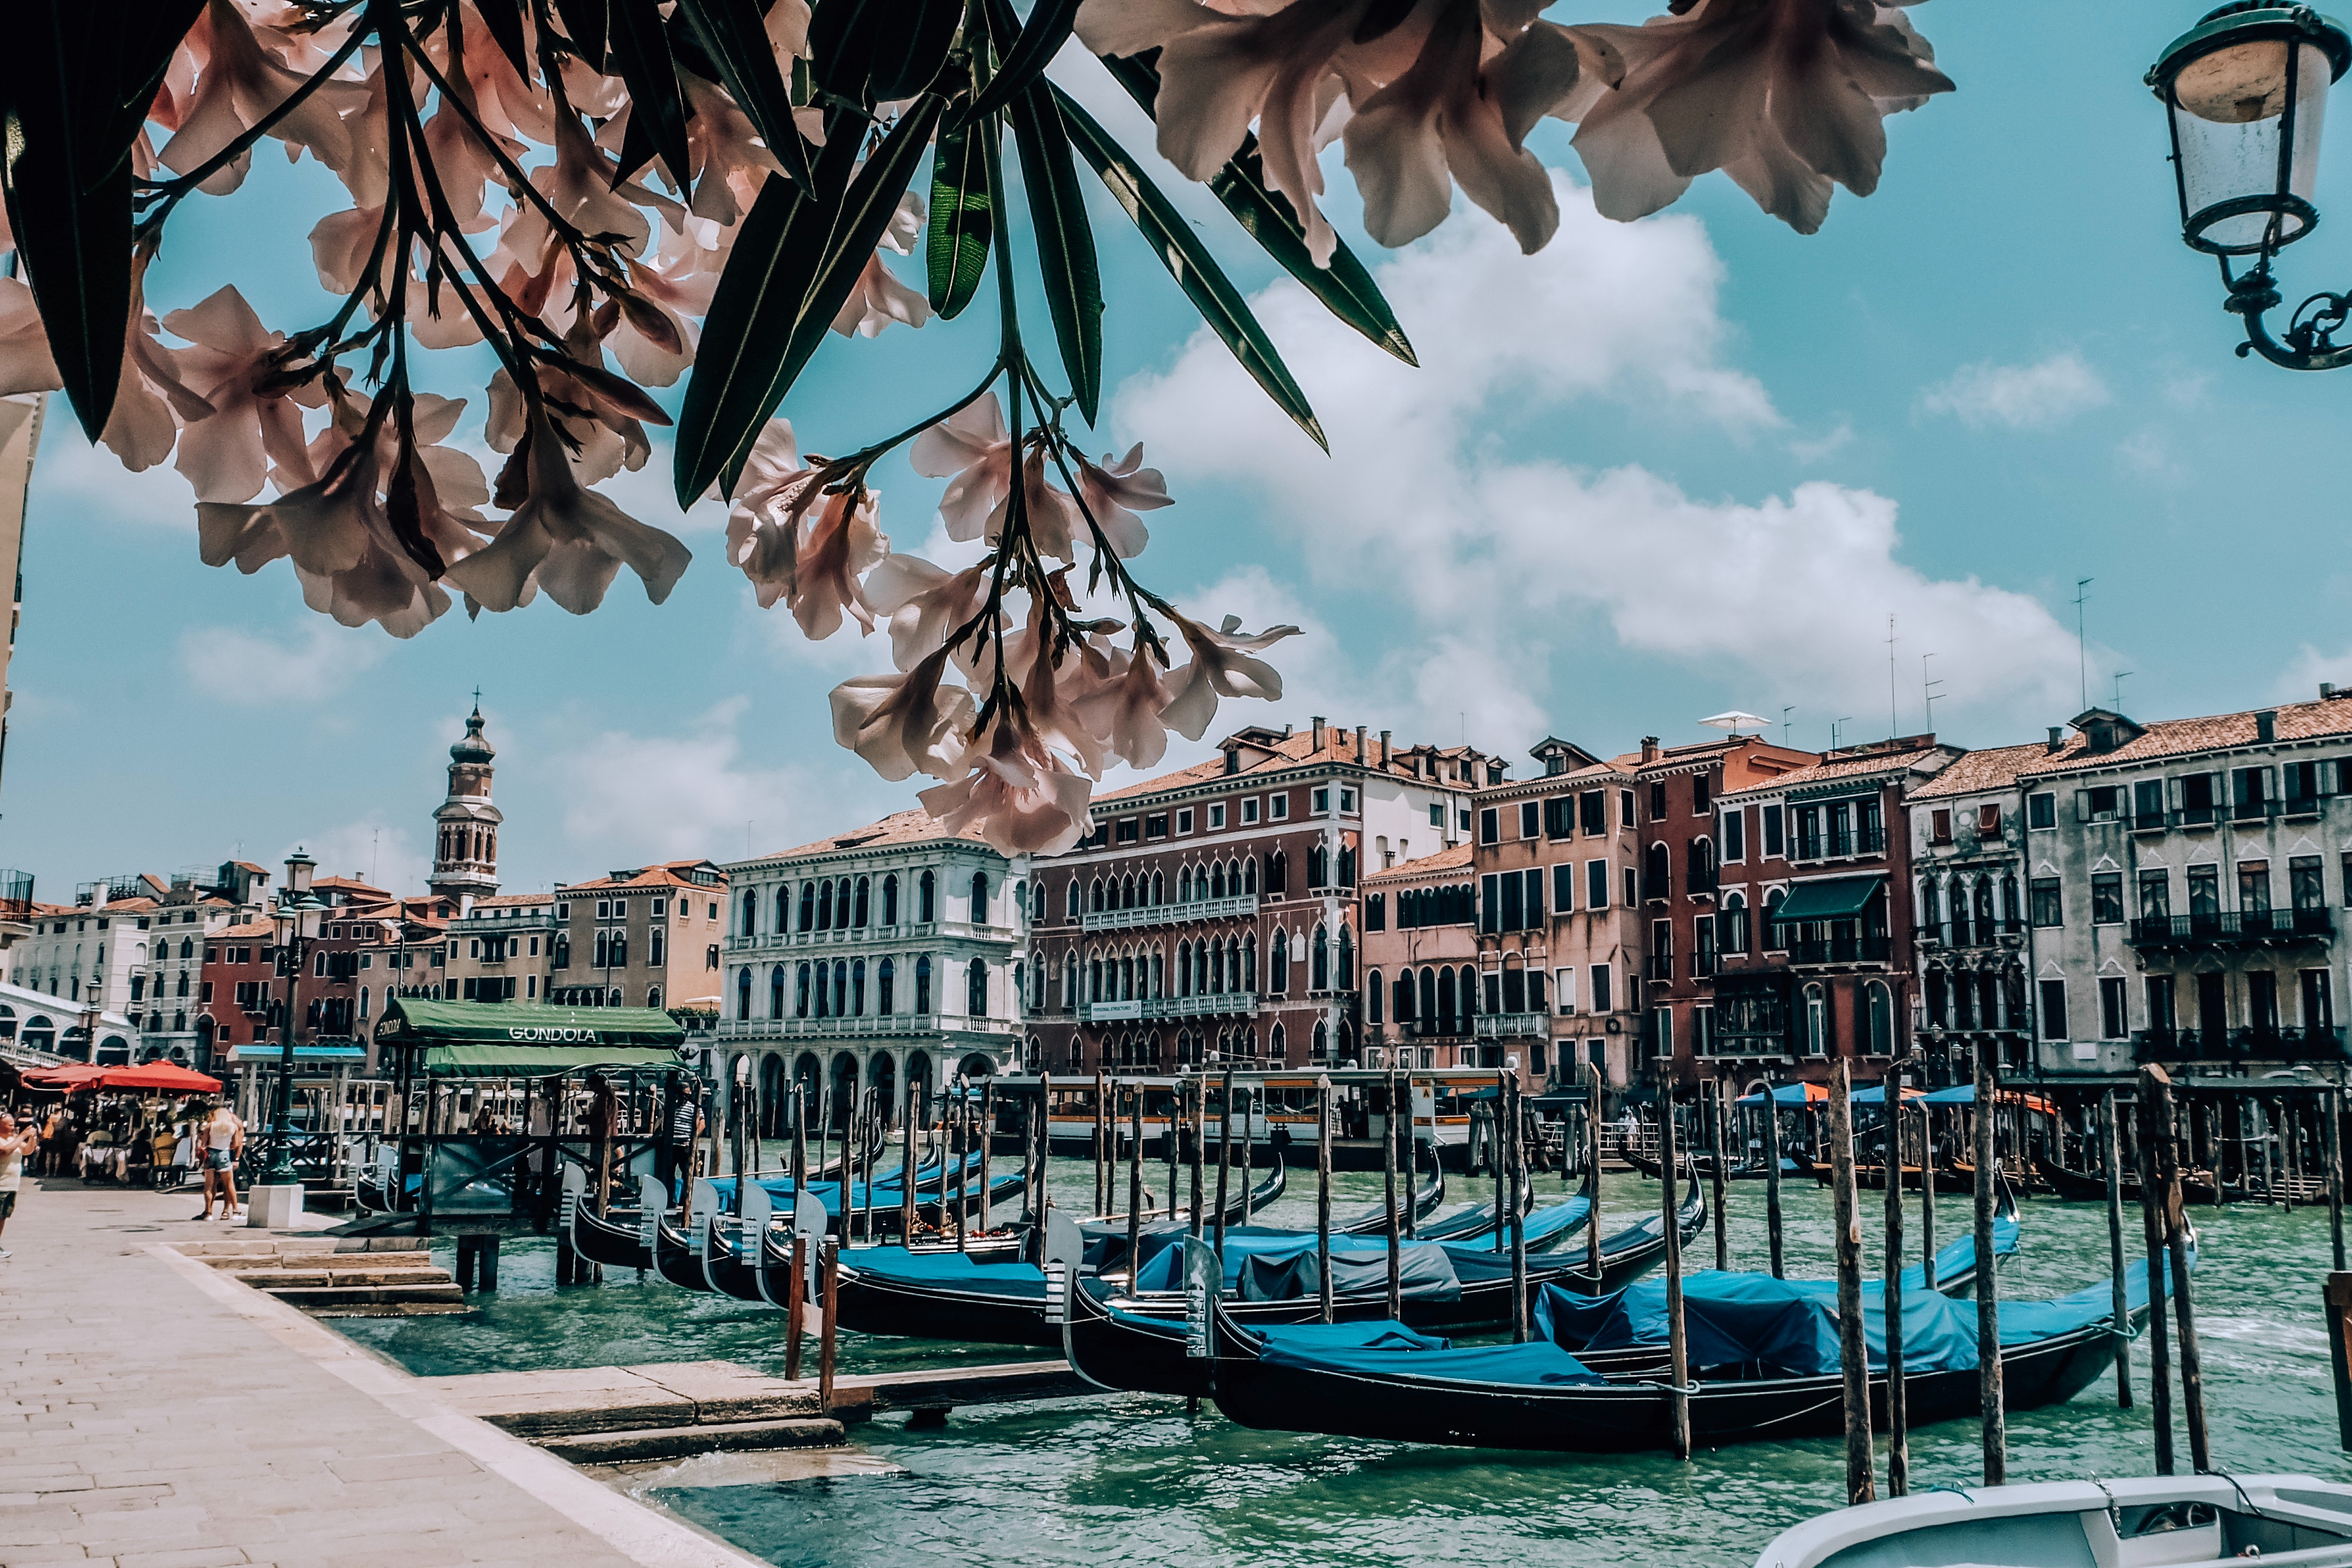 Tourism in Venice starts with young people